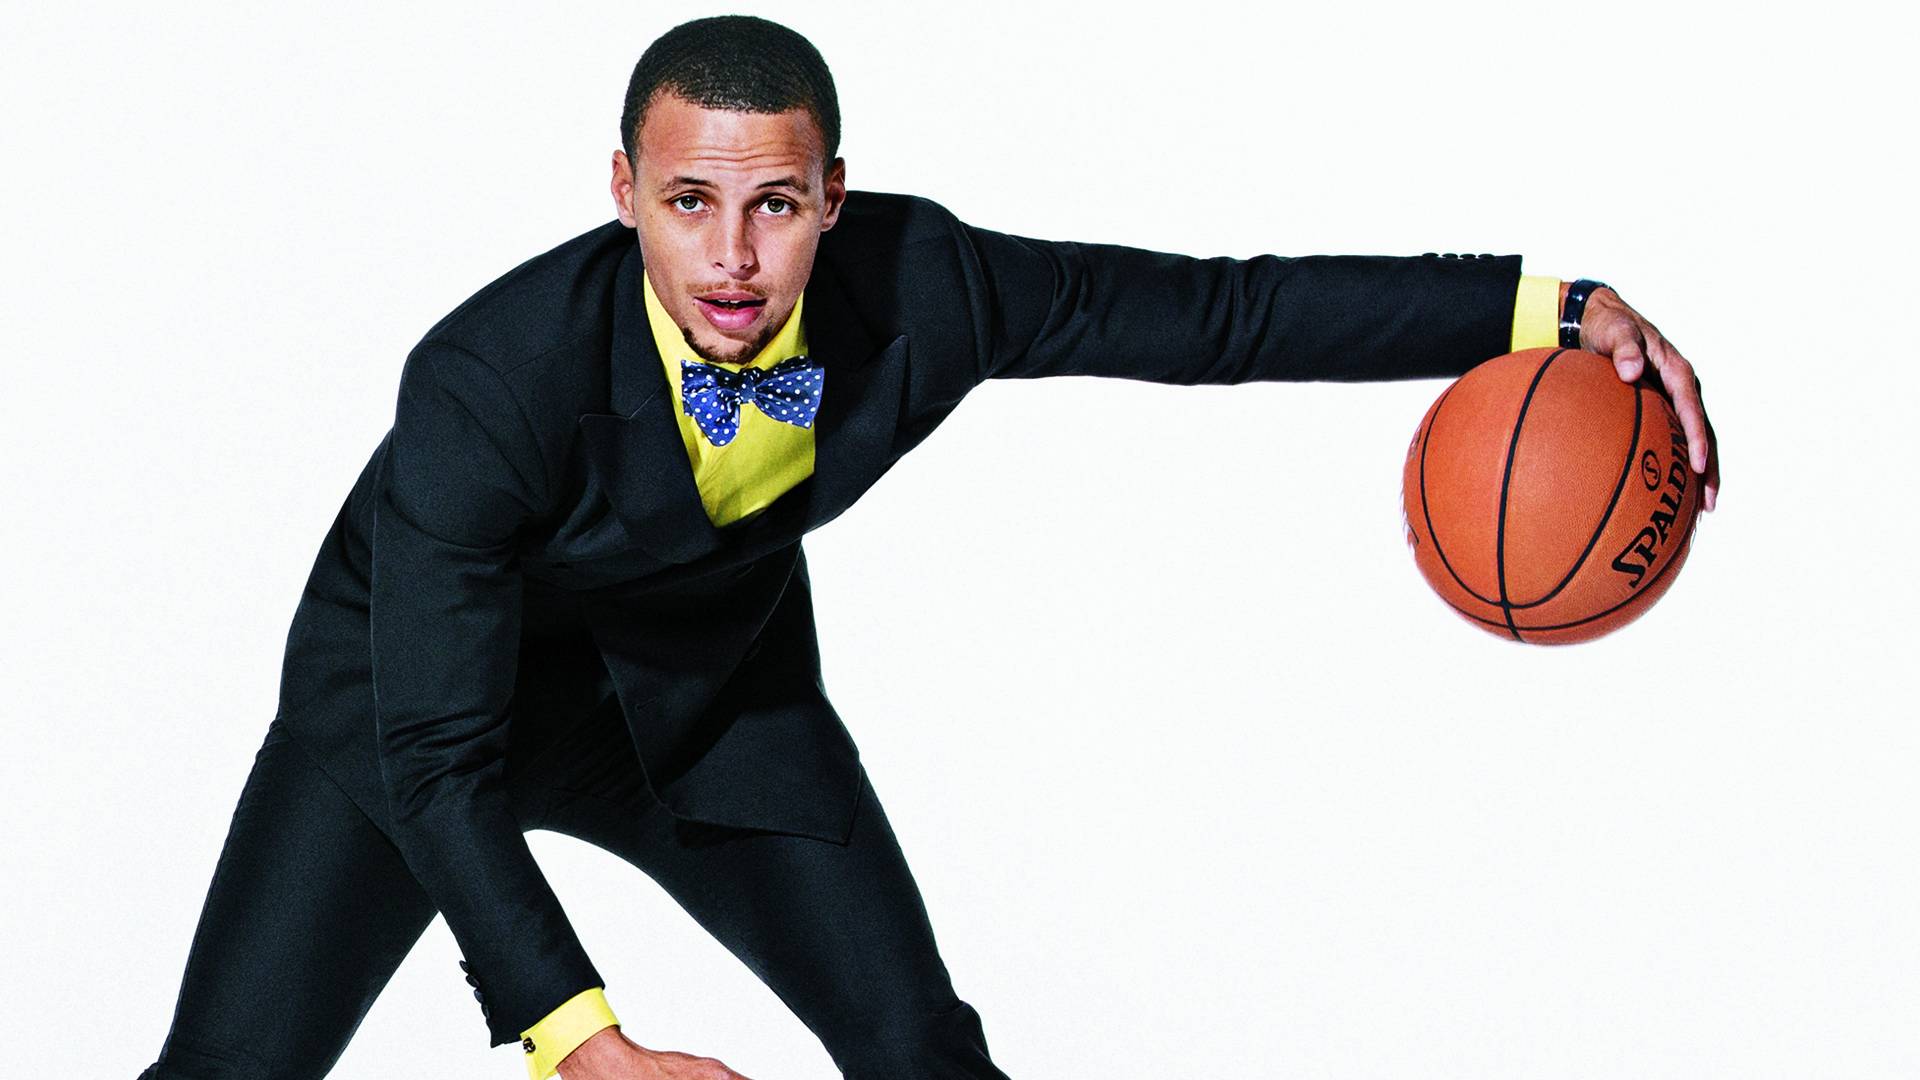 Wallpapers Stephen Curry Galleries Stephen Curry Pics Stephen Curry 1920x1080